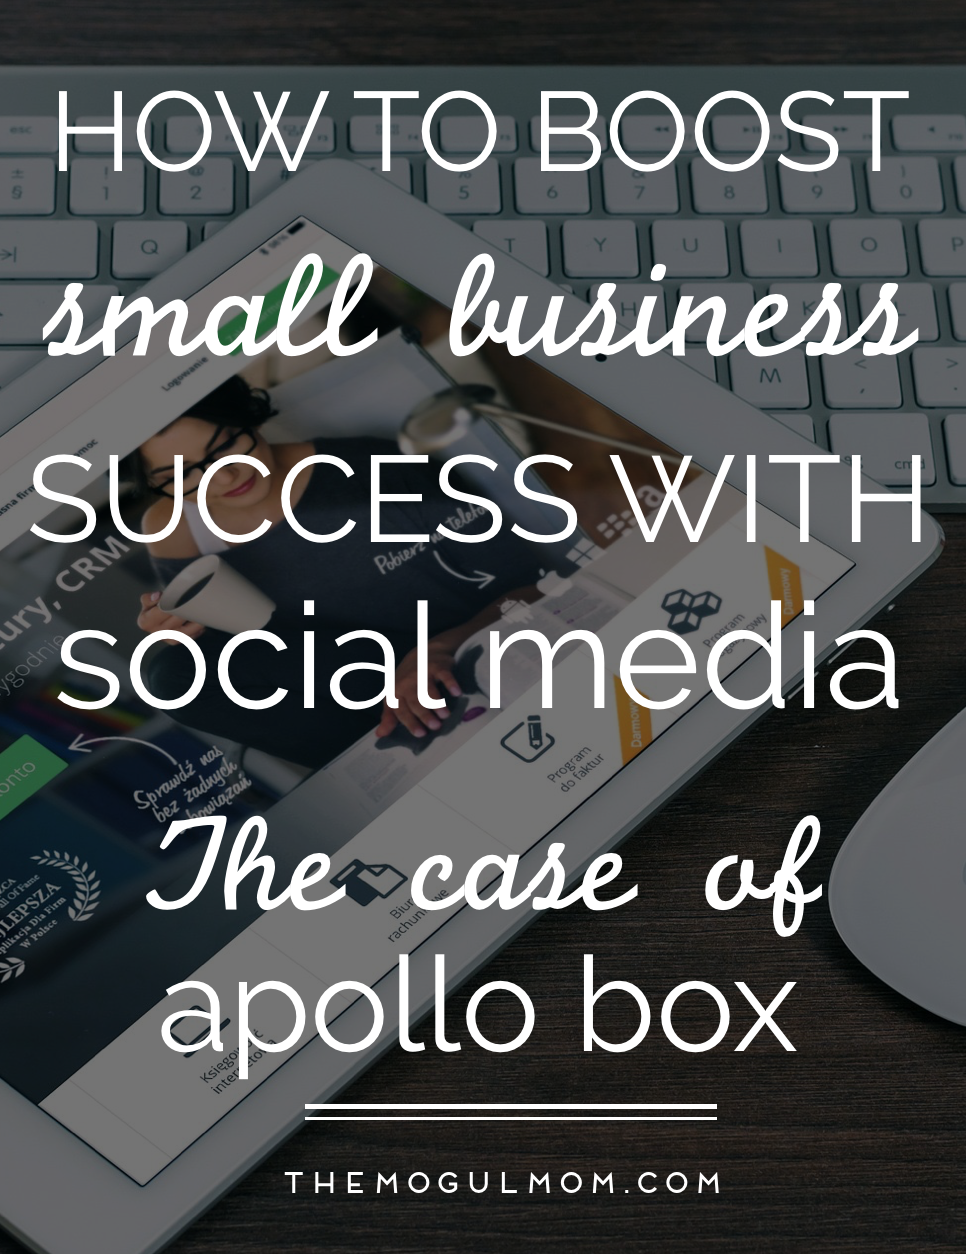 How To Boost Small Business Success Using Social Media: The Case of Apollo Box